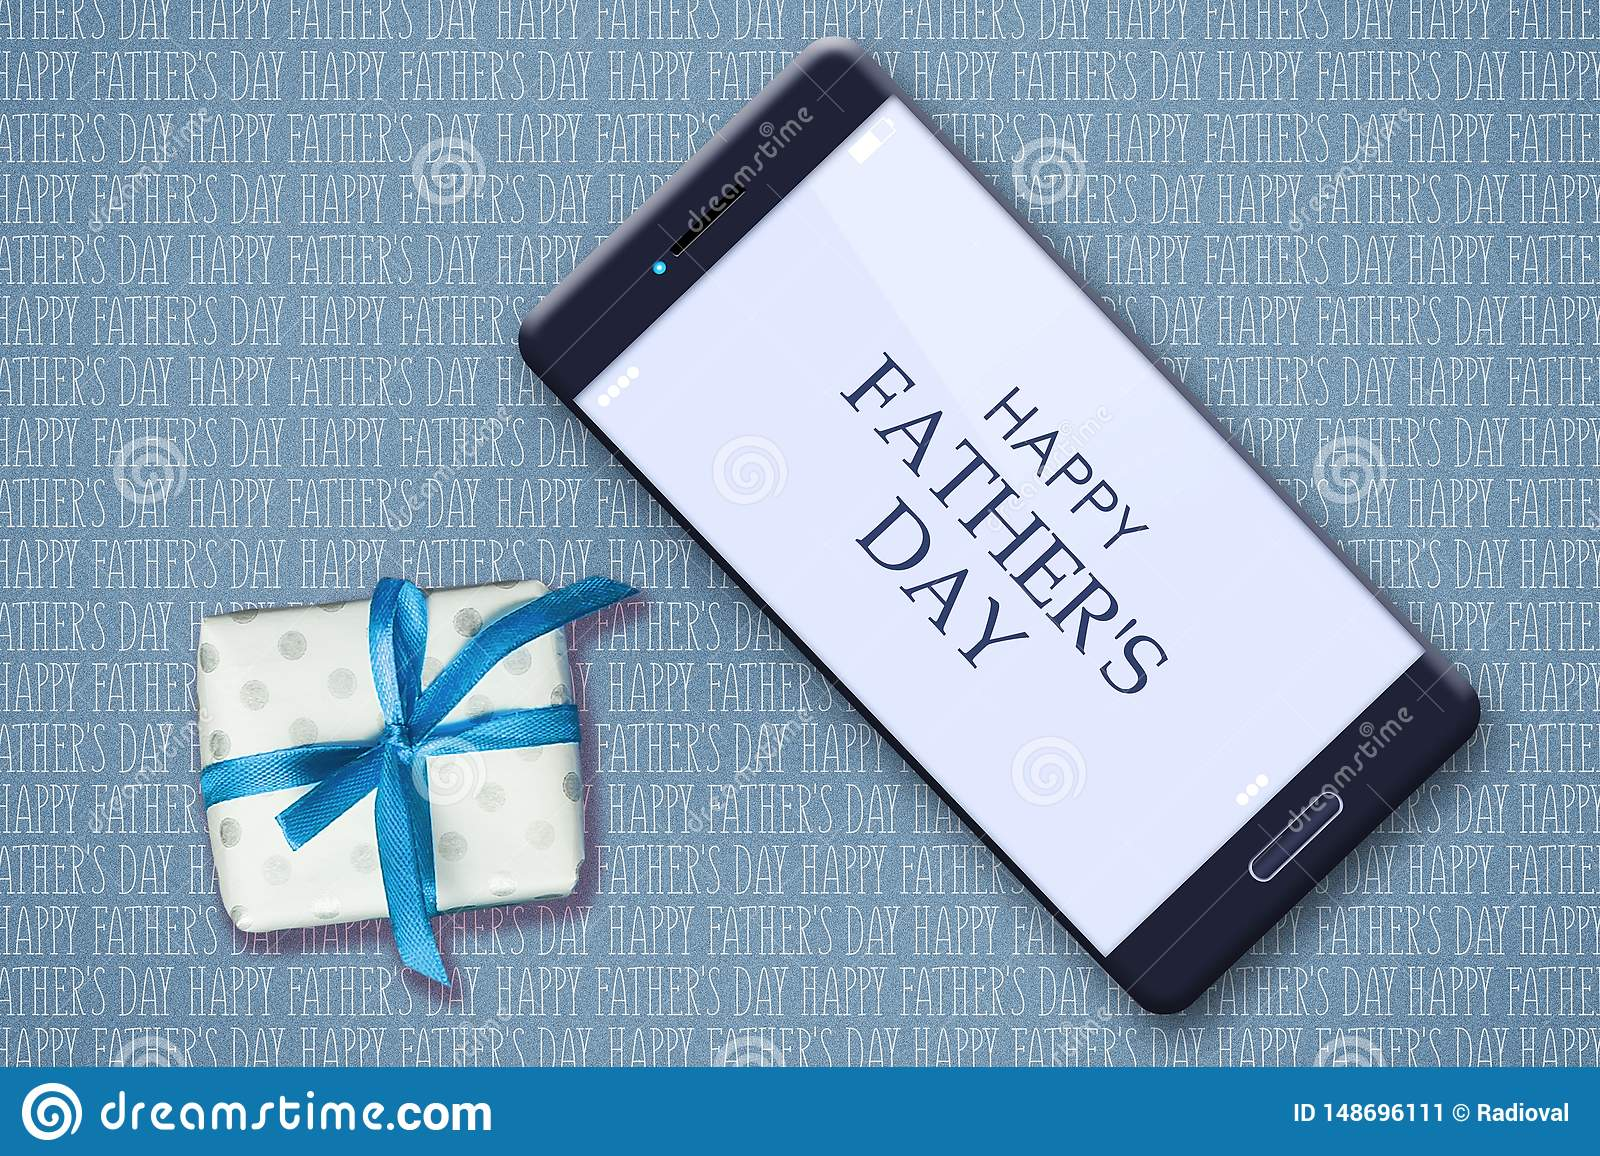 Happy father`s day background. Smartphone and gift on the background of many inscriptions Happy Father`s Day. Congratulatory